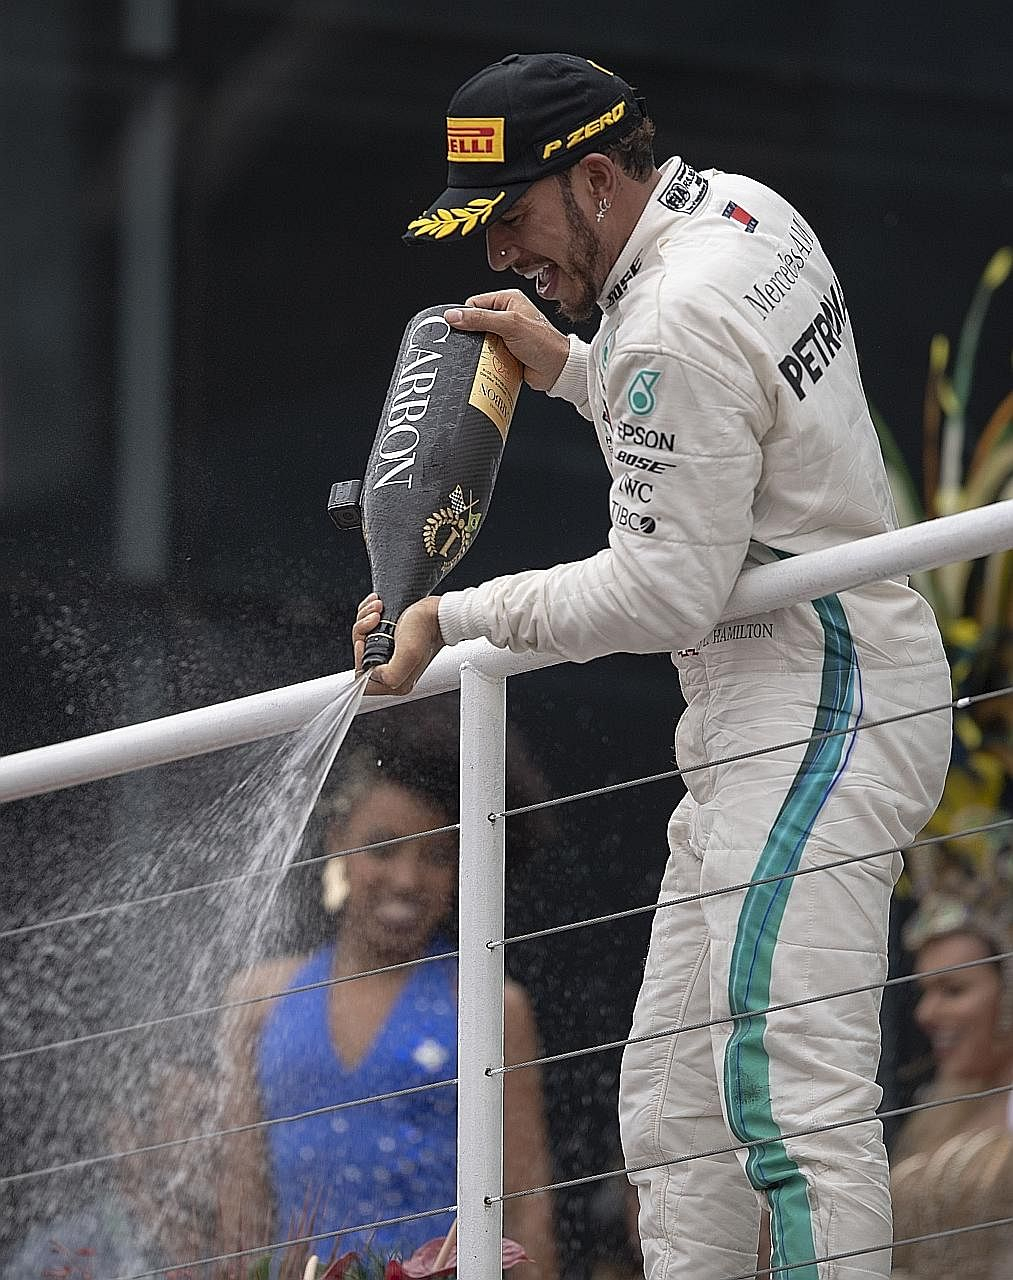 Mercedes driver Lewis Hamilton has backtracked on his comments but they have gone viral on social media.